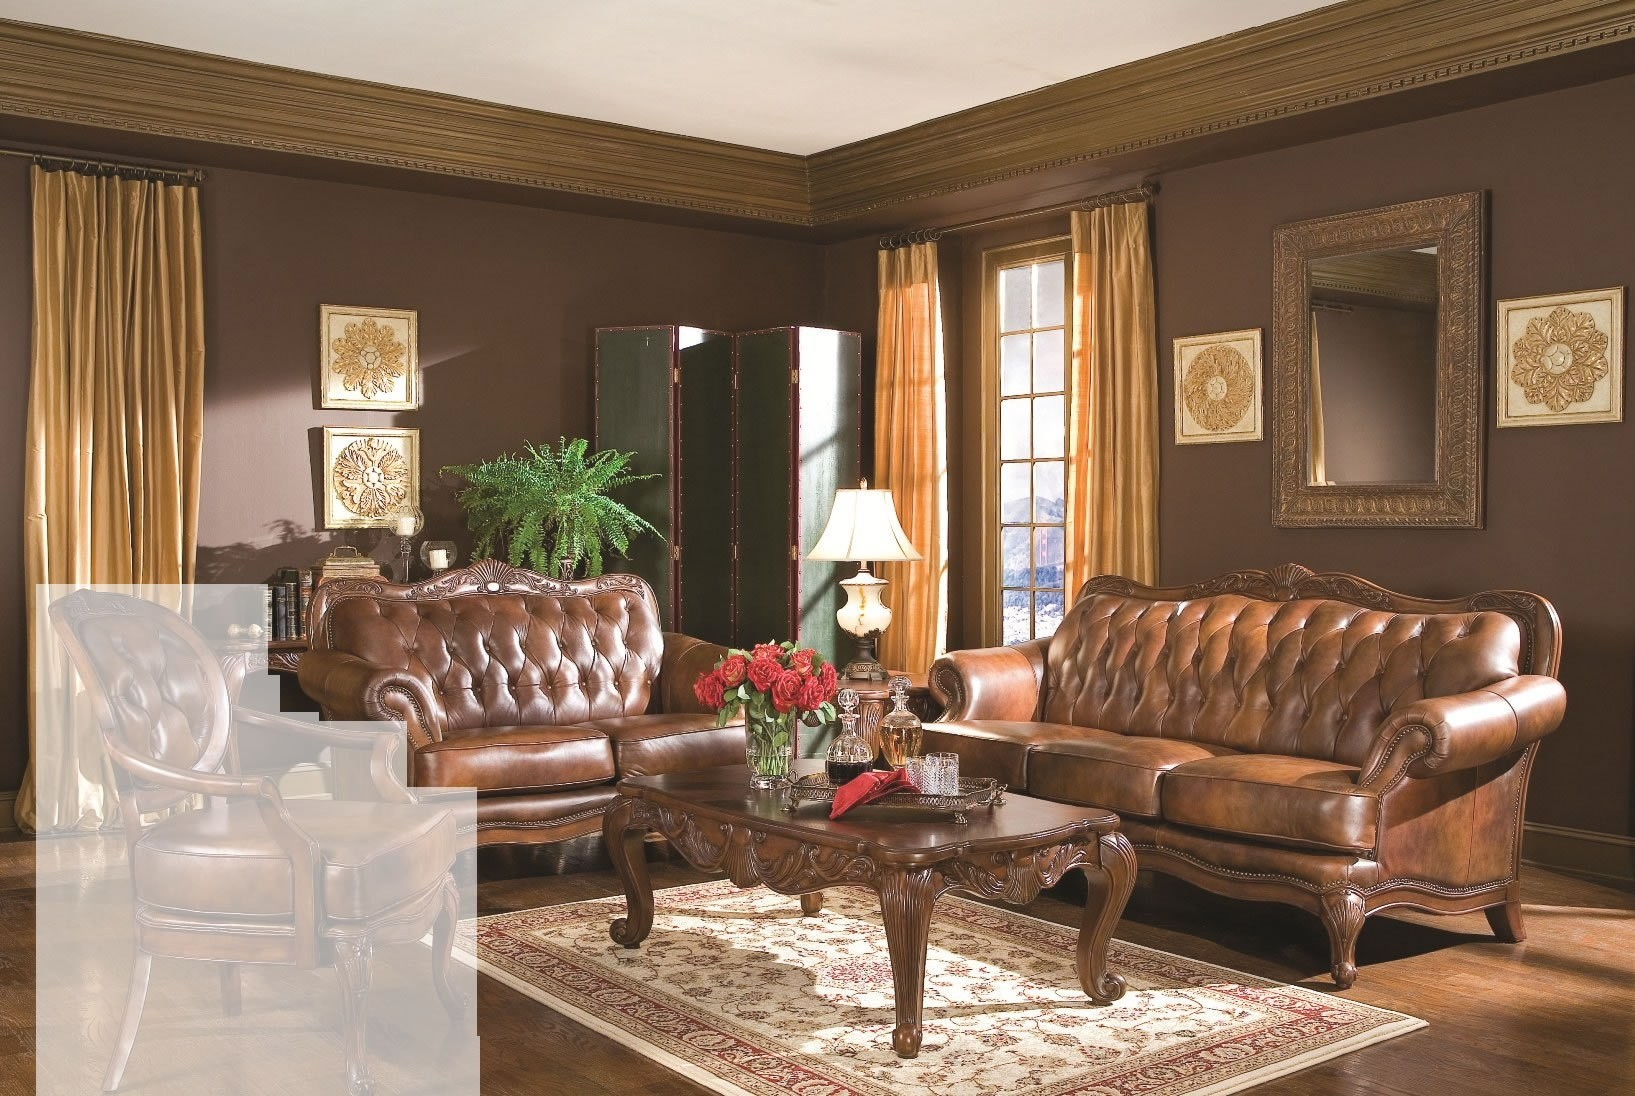 Victoria Living Room Set 50068 From Coaster 50068